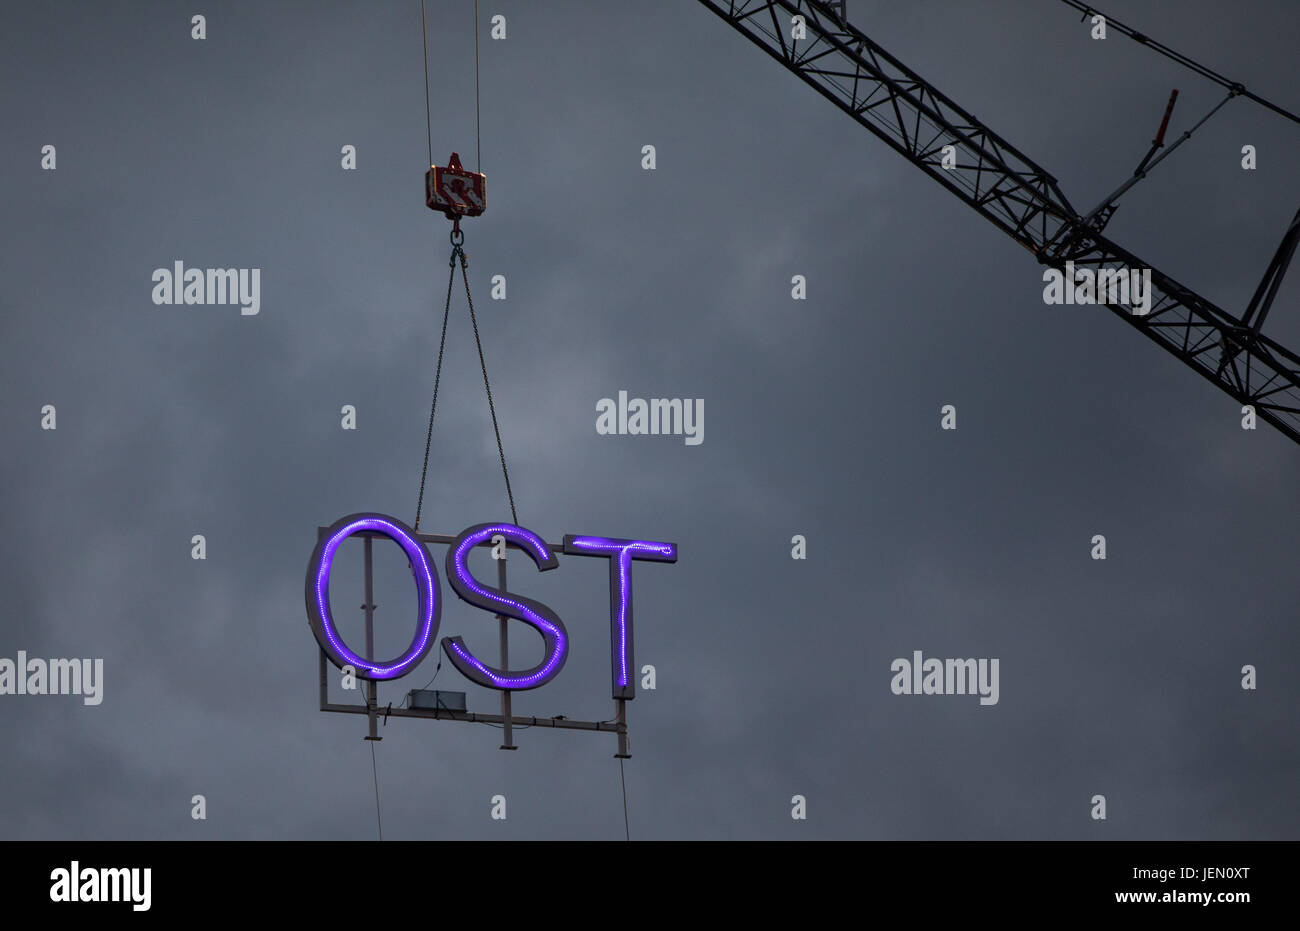 Large letters spelling the word 'OST' (meaning 'east' in German) are removed from the roof of the - Stock Image